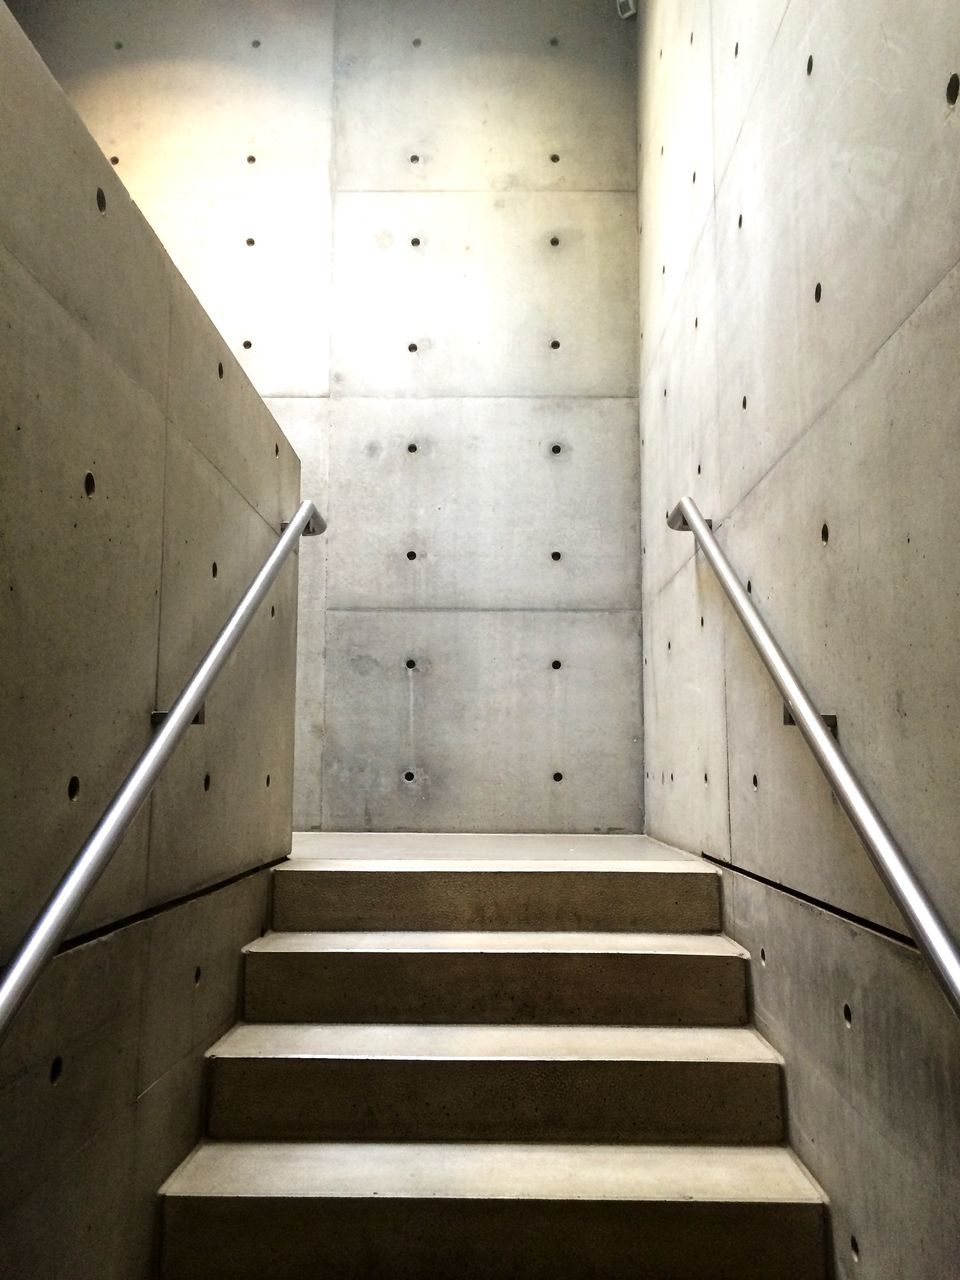 staircase, steps and staircases, steps, railing, indoors, stairs, architecture, hand rail, no people, day